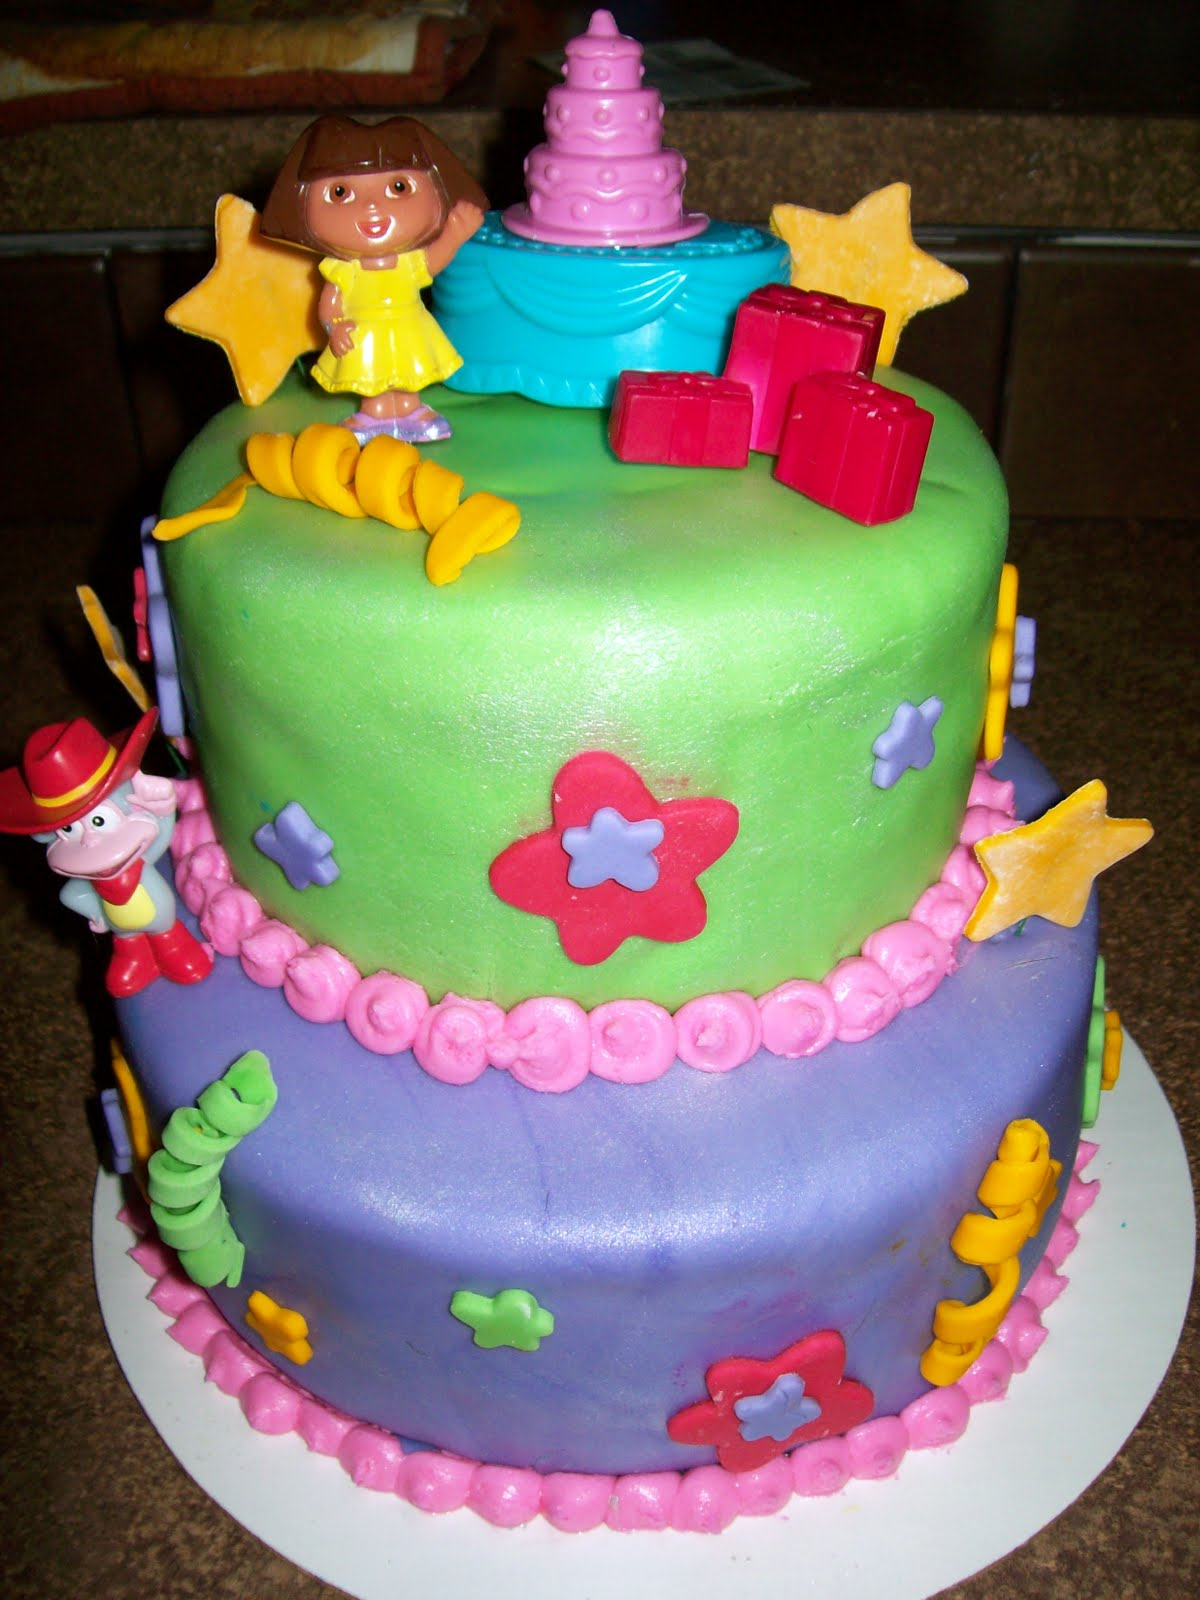 Cakes By Design: Dora, Dora, Dora, the Explorer